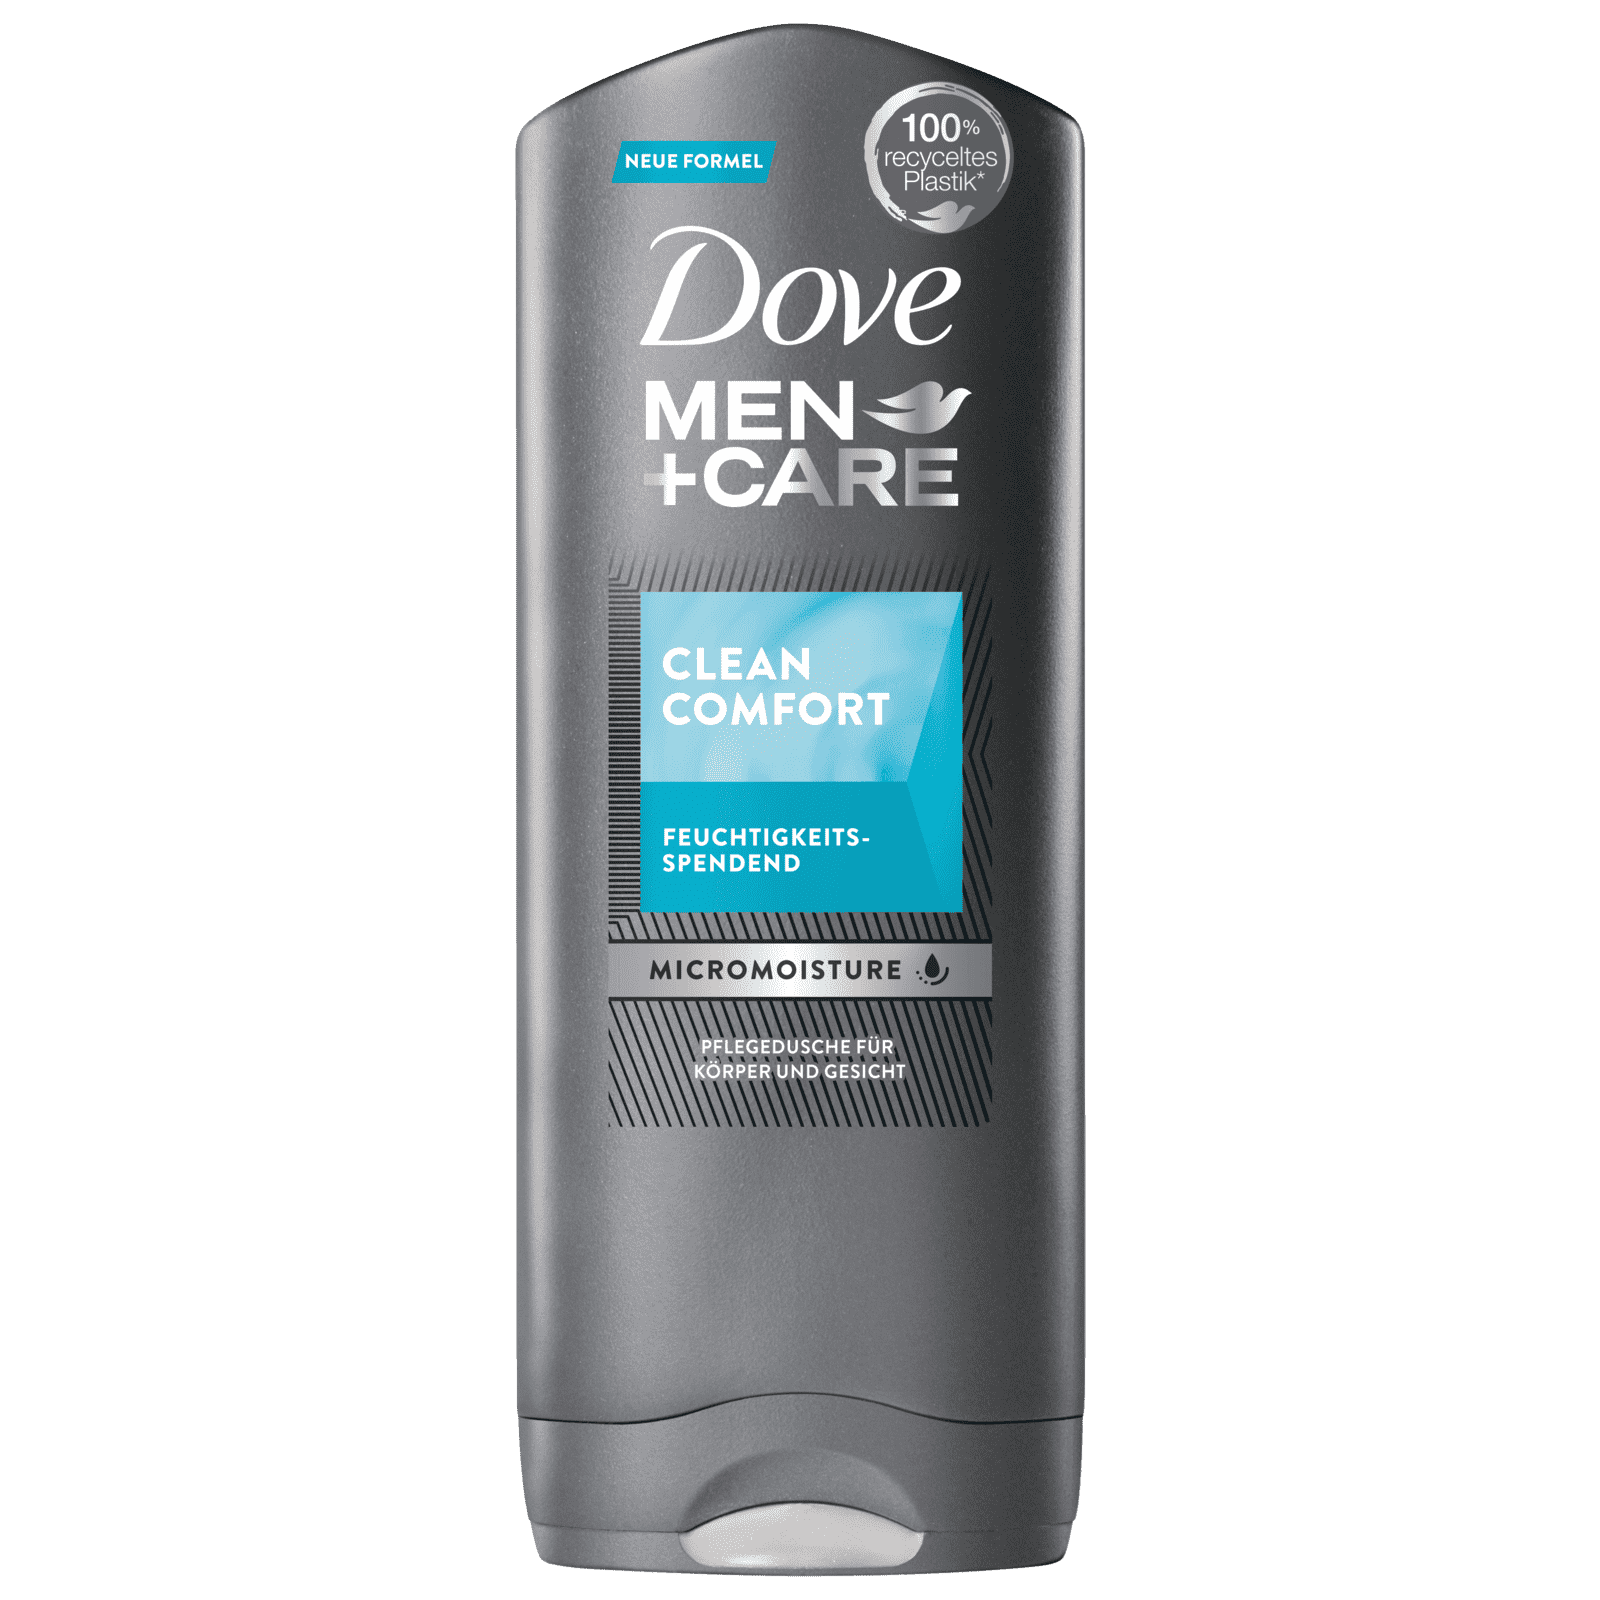 Dove Men+Care Pflegedusche, versch. Sorten